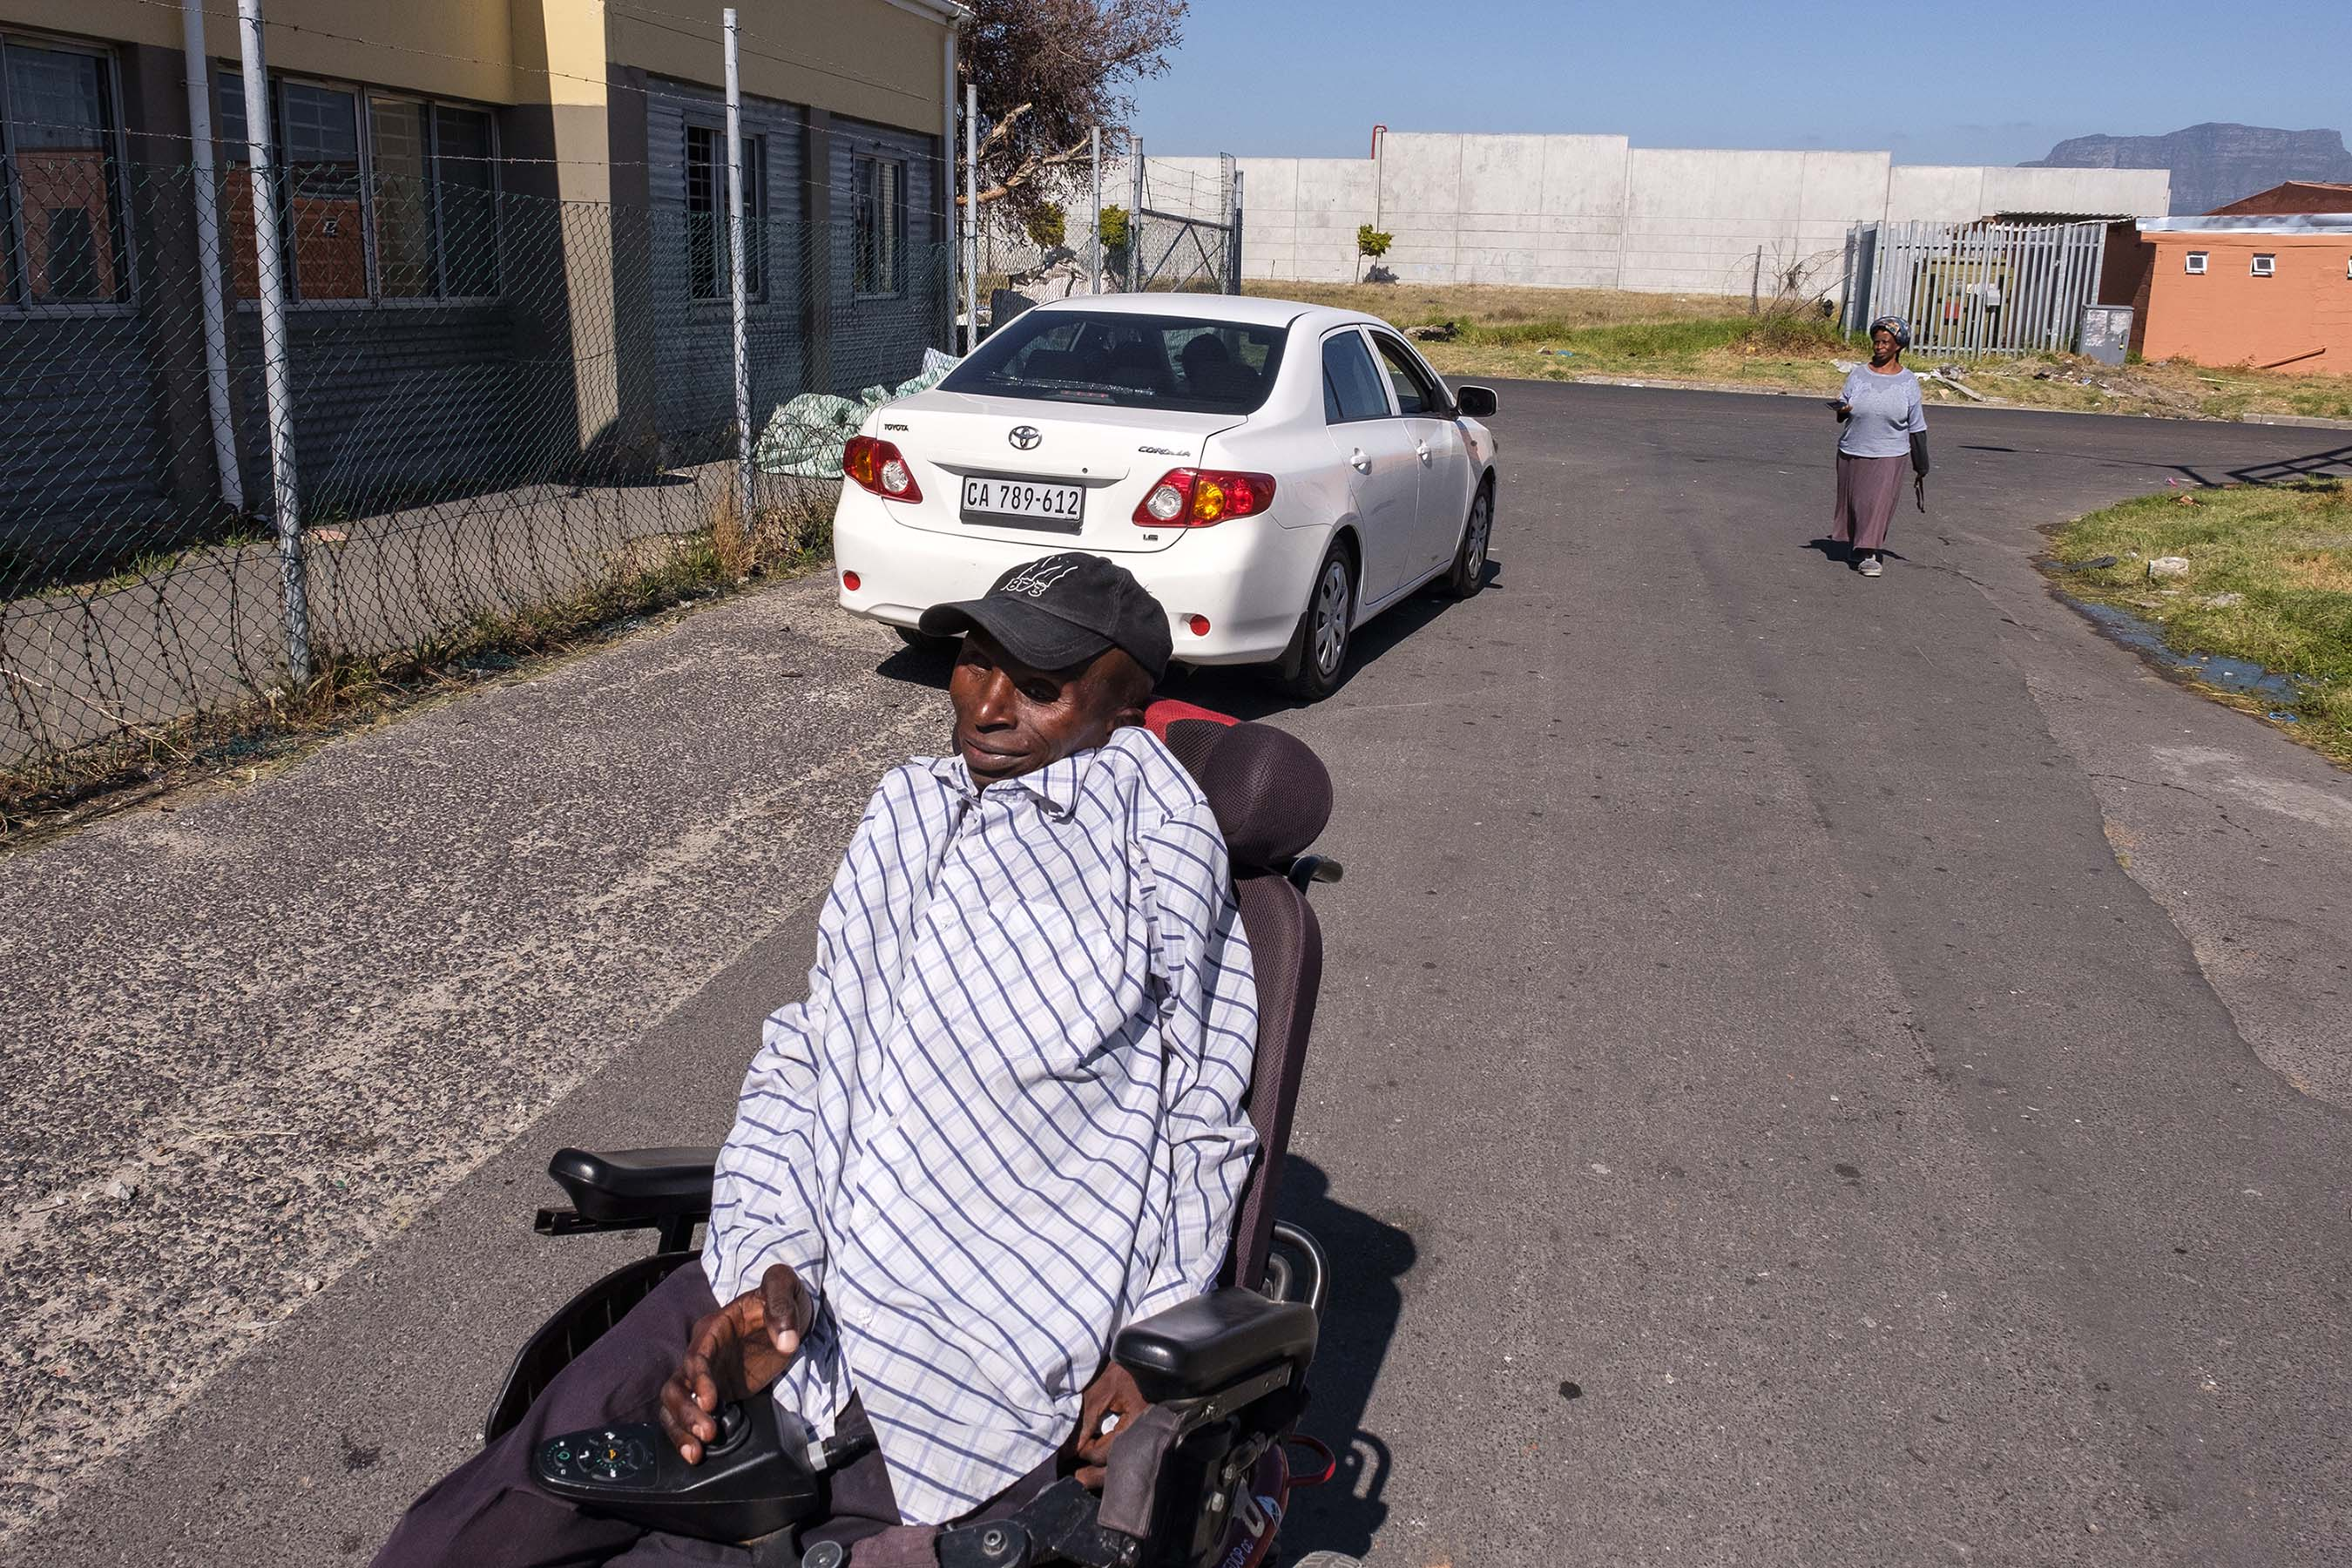 22 November 2019: Thozi Mciki is able to walk, but slowly because of his limited mobility. Before getting his specialised wheelchair in 2017, his sister Noam-India Mciki (right) would make the slow commute on foot with him.